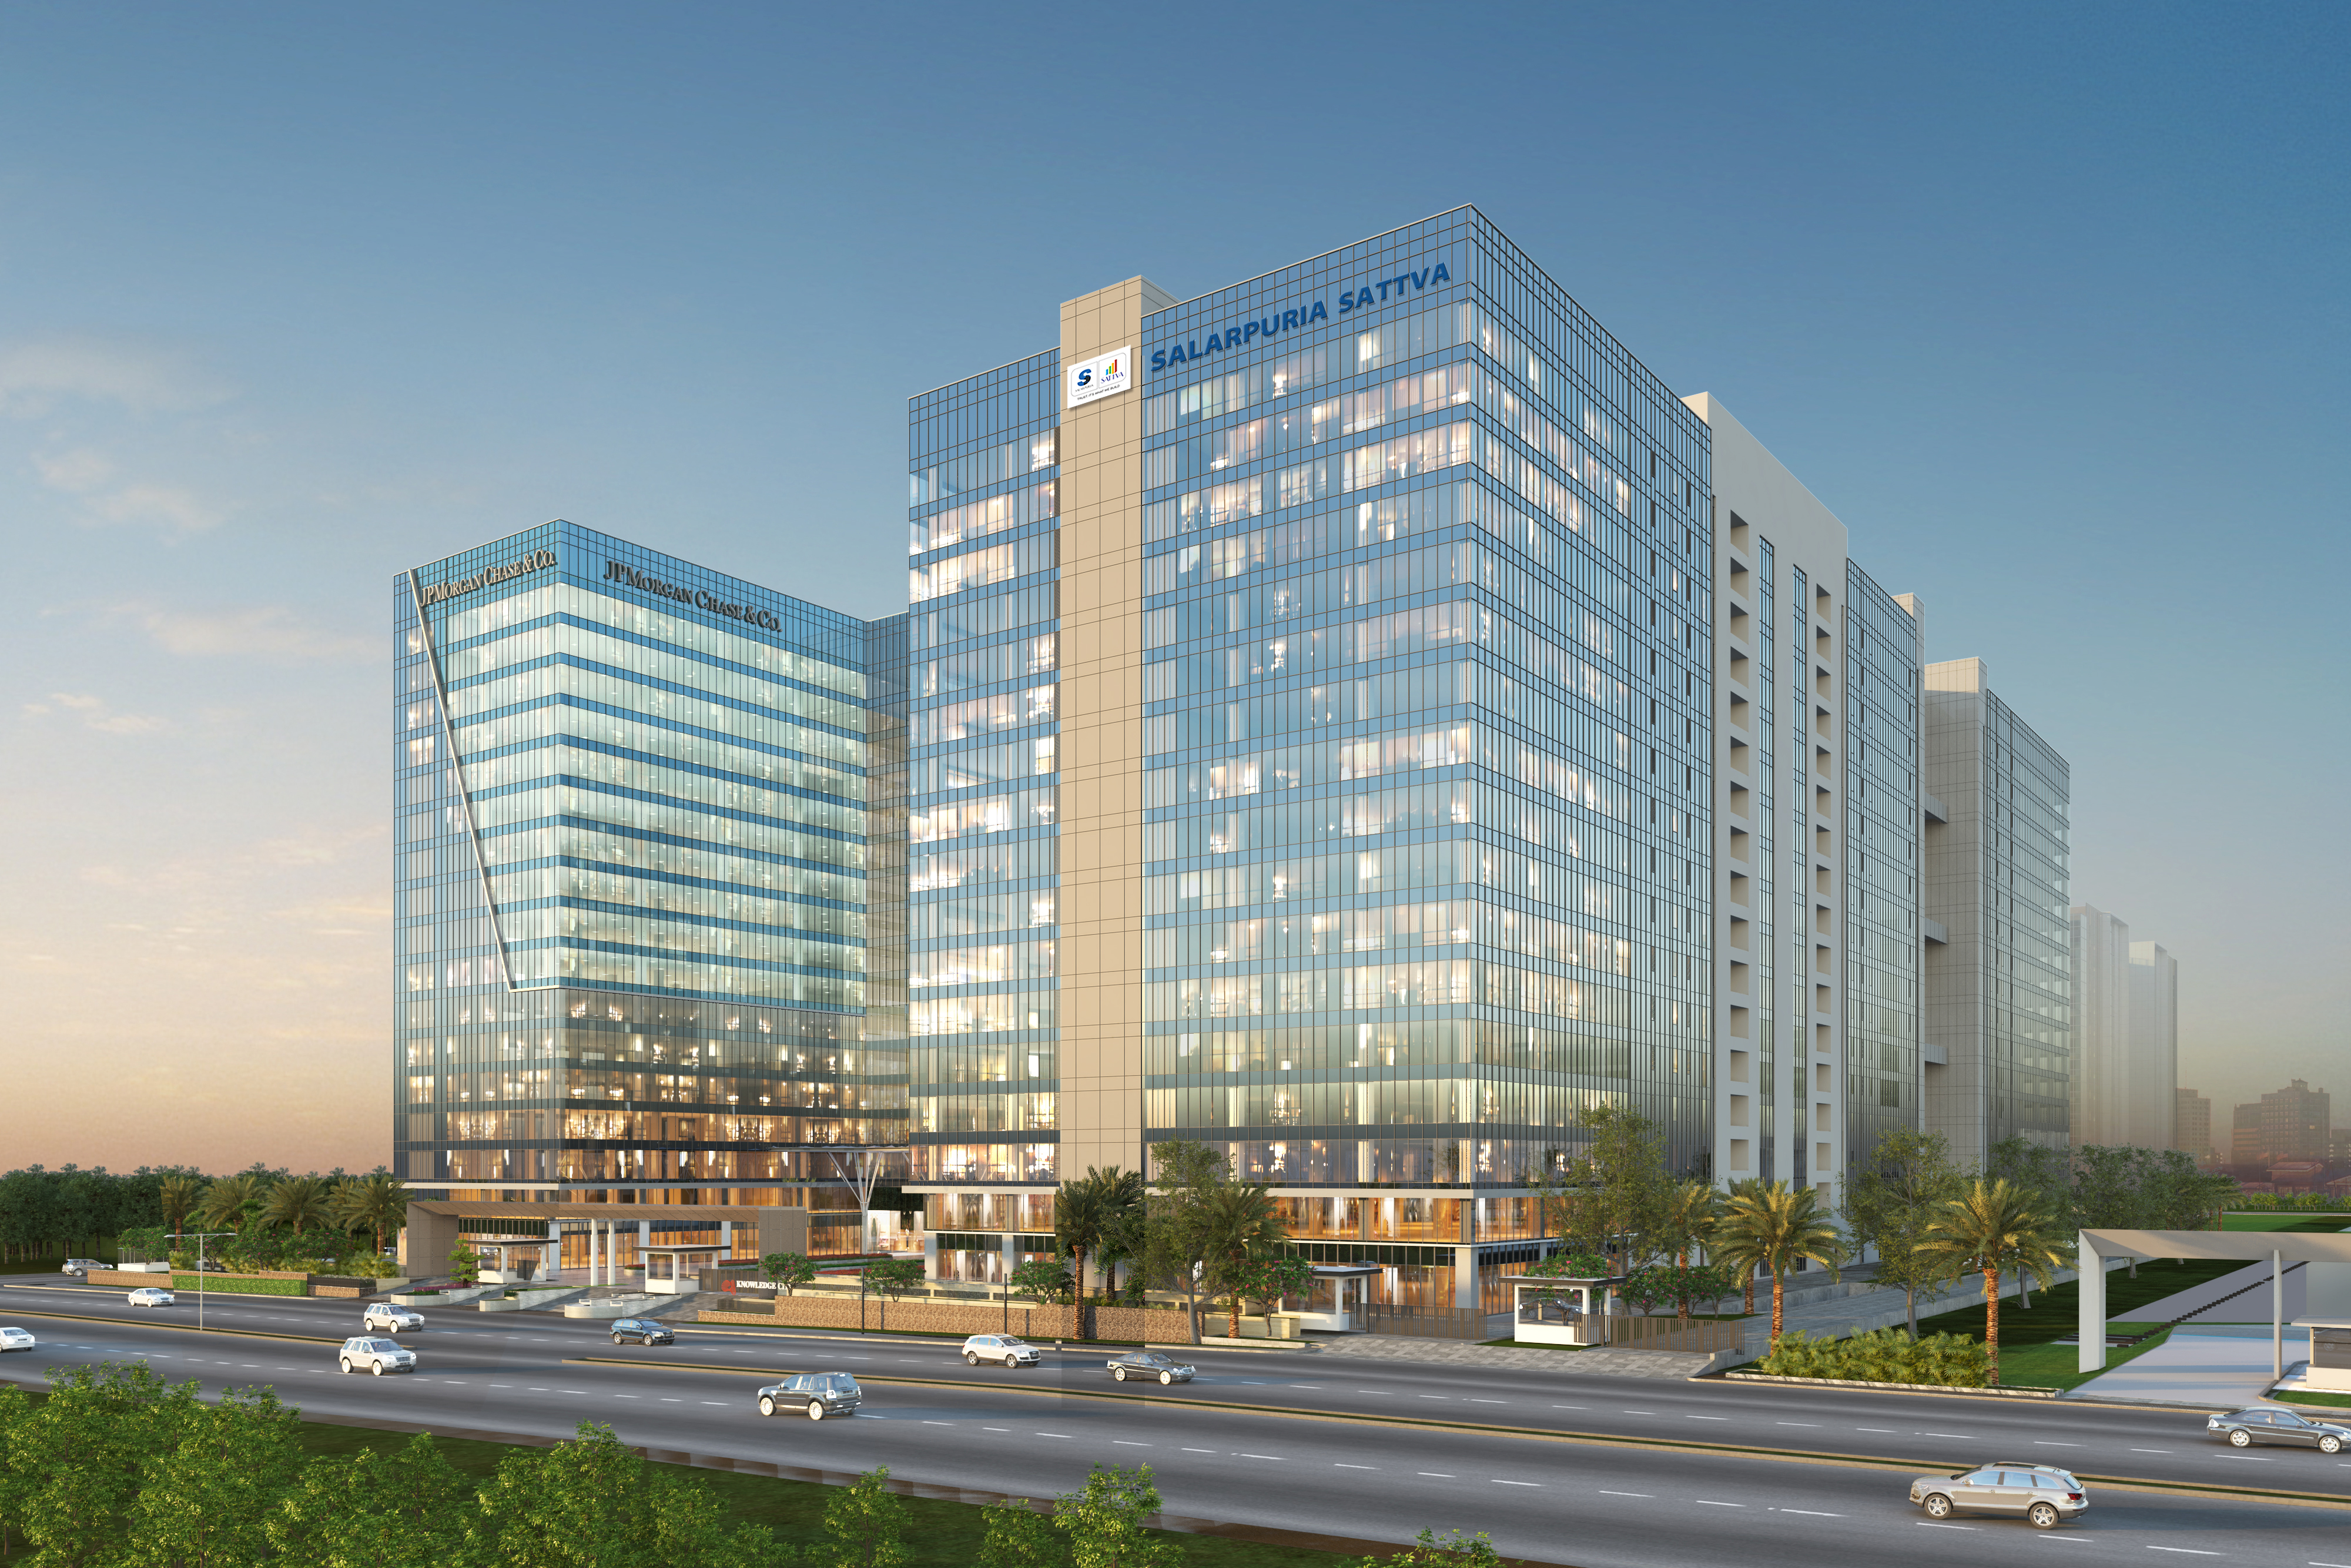 Salarpuria Sattva Knowledge Park, Salarpuria Sattva Knowledge City, Hyderabad commercial projects, HITECH City Hyderabad office space, Best office space in Hyderabad, India real estate news, Indian realty news, Real estate news India, Indian property market news, Investment in Hyderabad property, Track2Realty